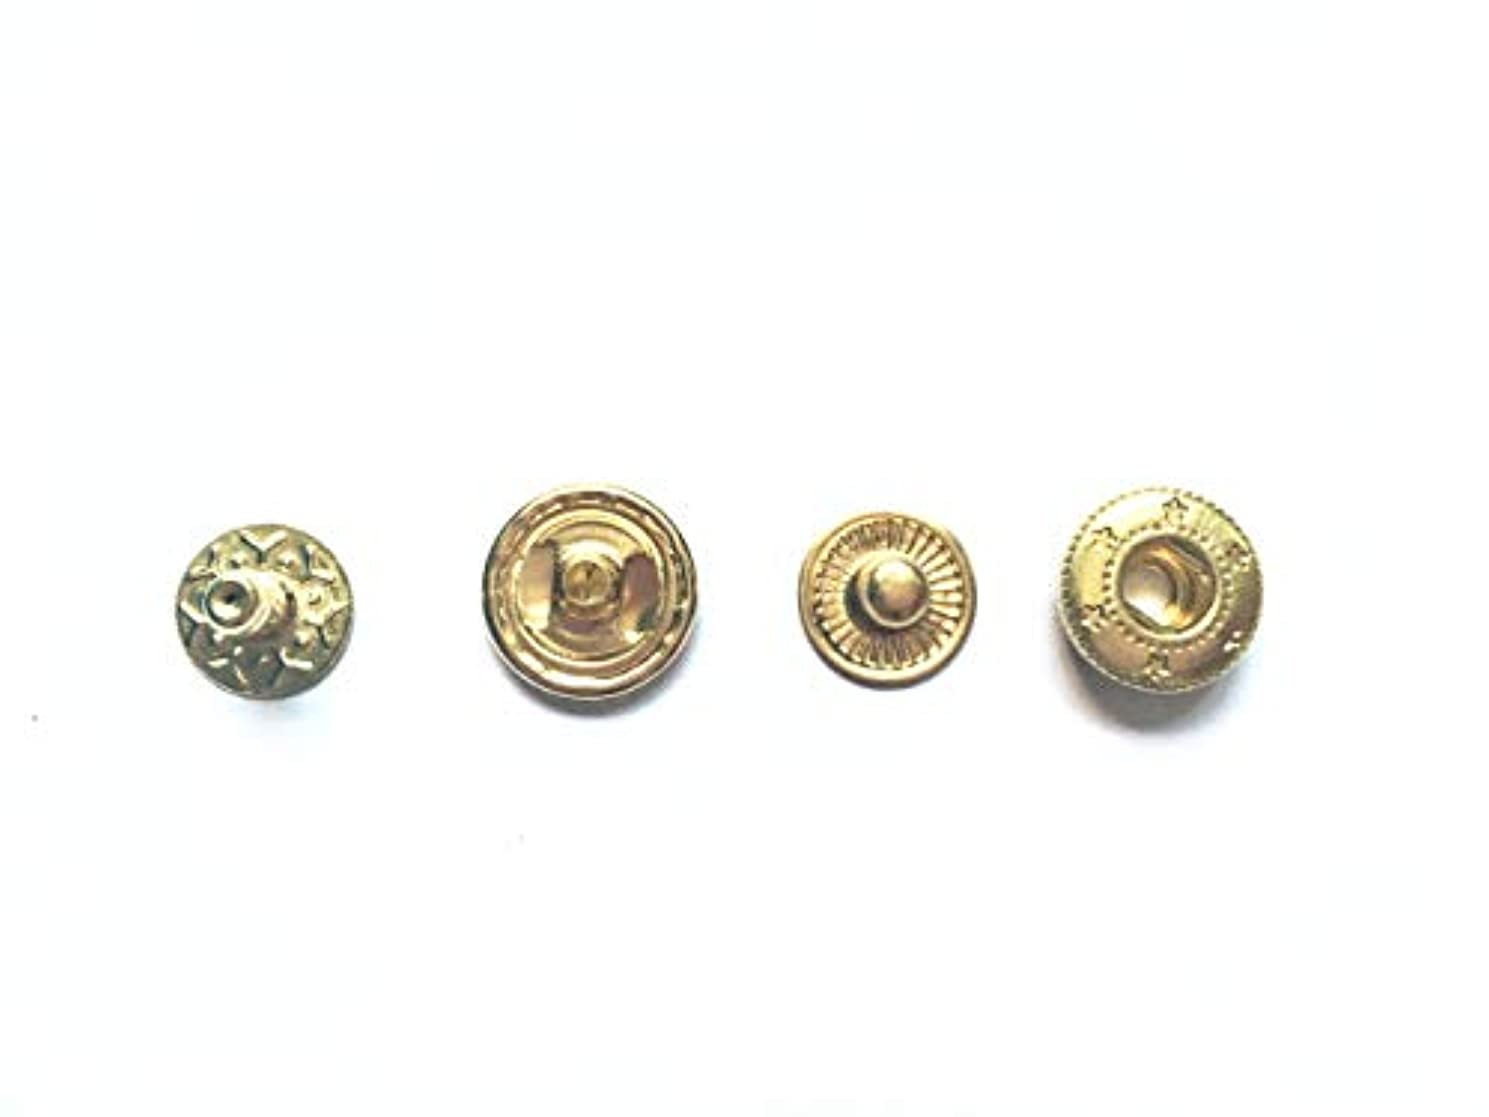 100 Sets 1/2 Inch Metal Snap Fasteners Leather Snaps Button Press Studs (Gold, 12.5mm)